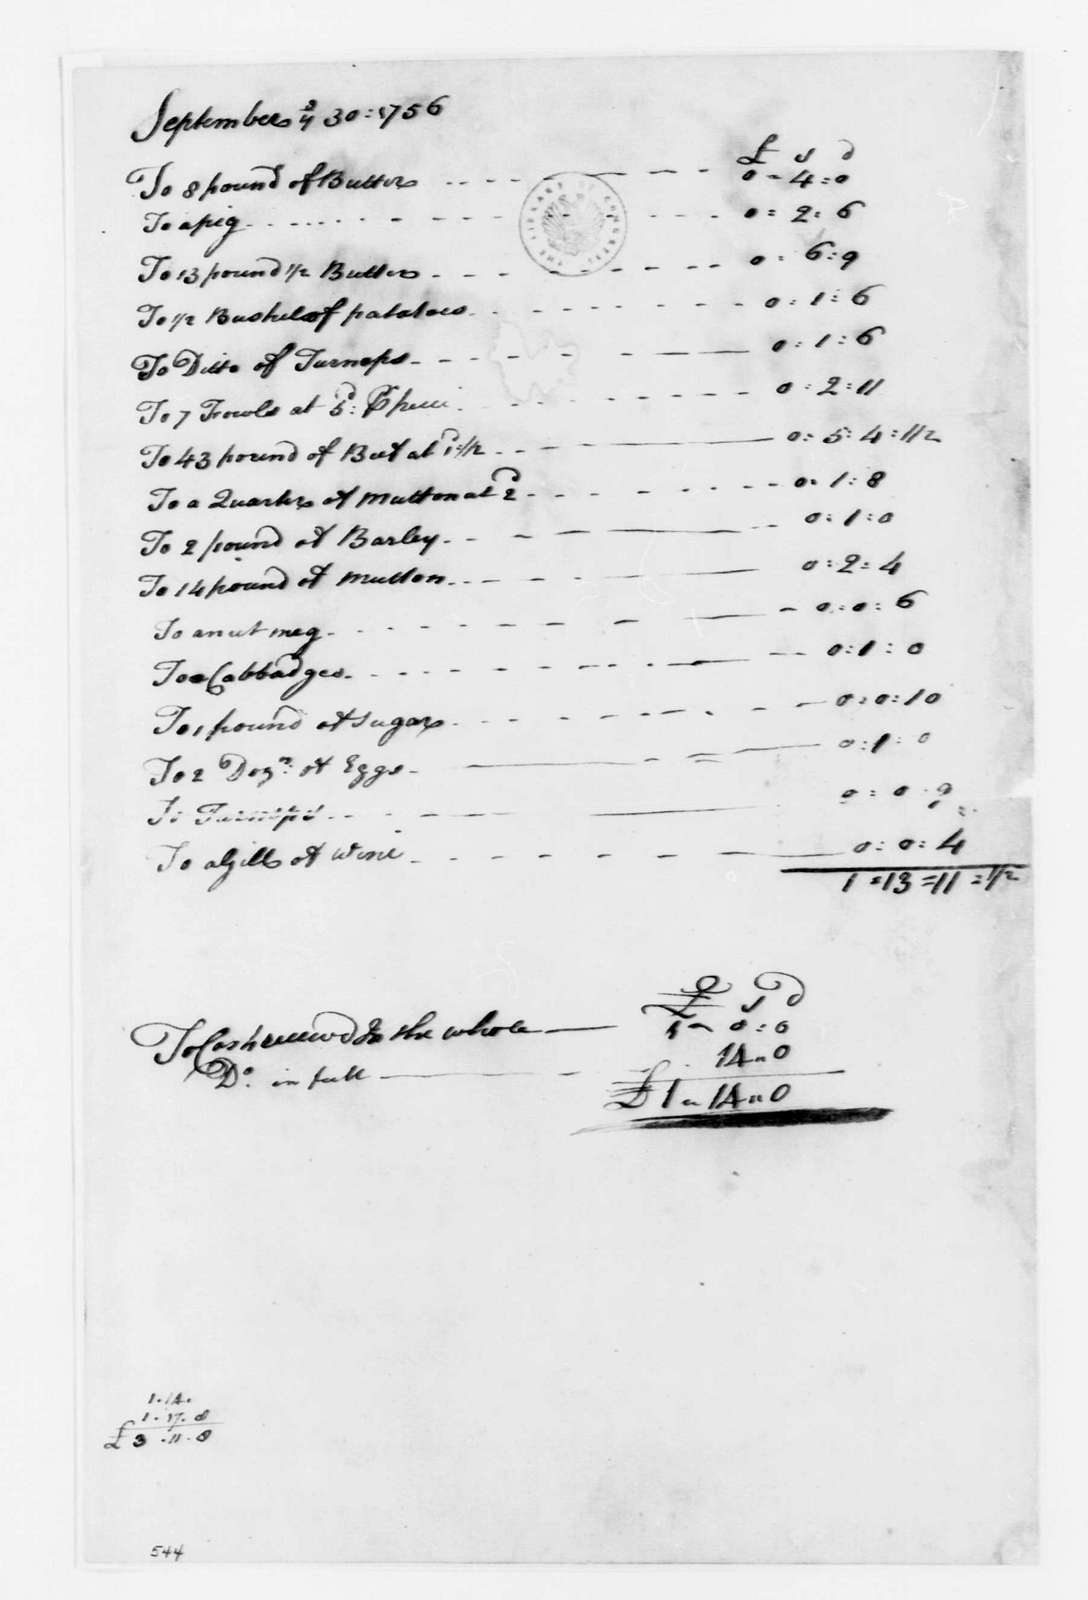 George Washington Papers, Series 4, General Correspondence: George Washington, September 30, 1756, Account of Headquarters Provisions